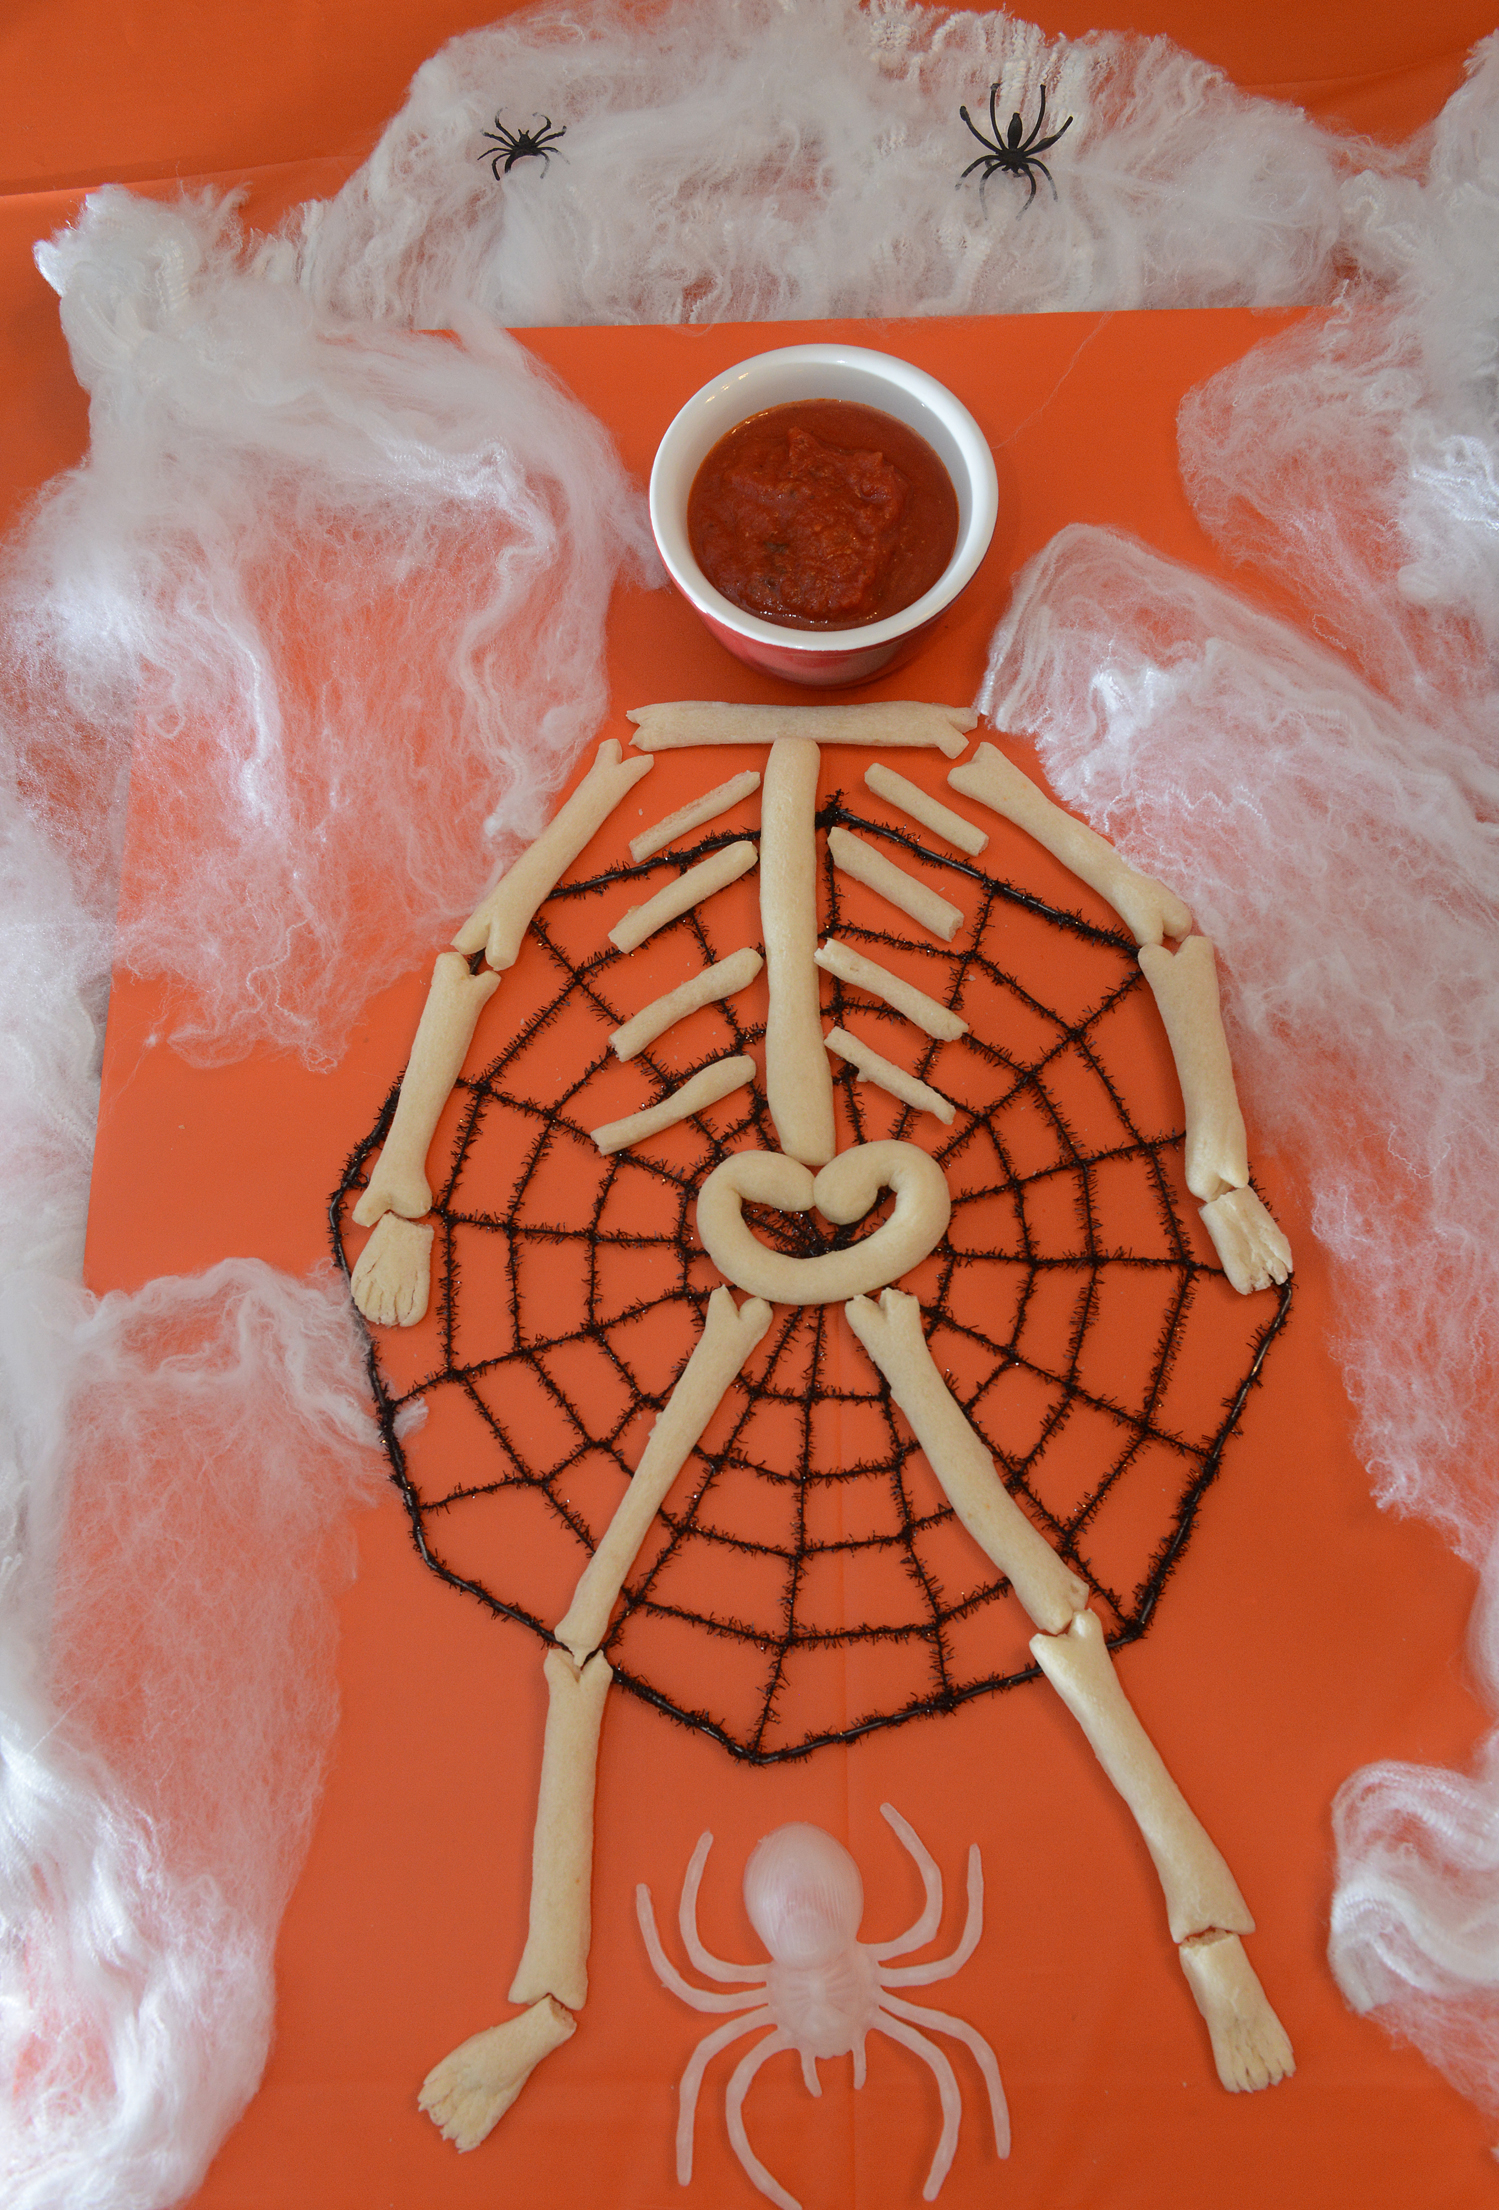 Skeleton Bread stick skeleton with marinara sauce. FOOD